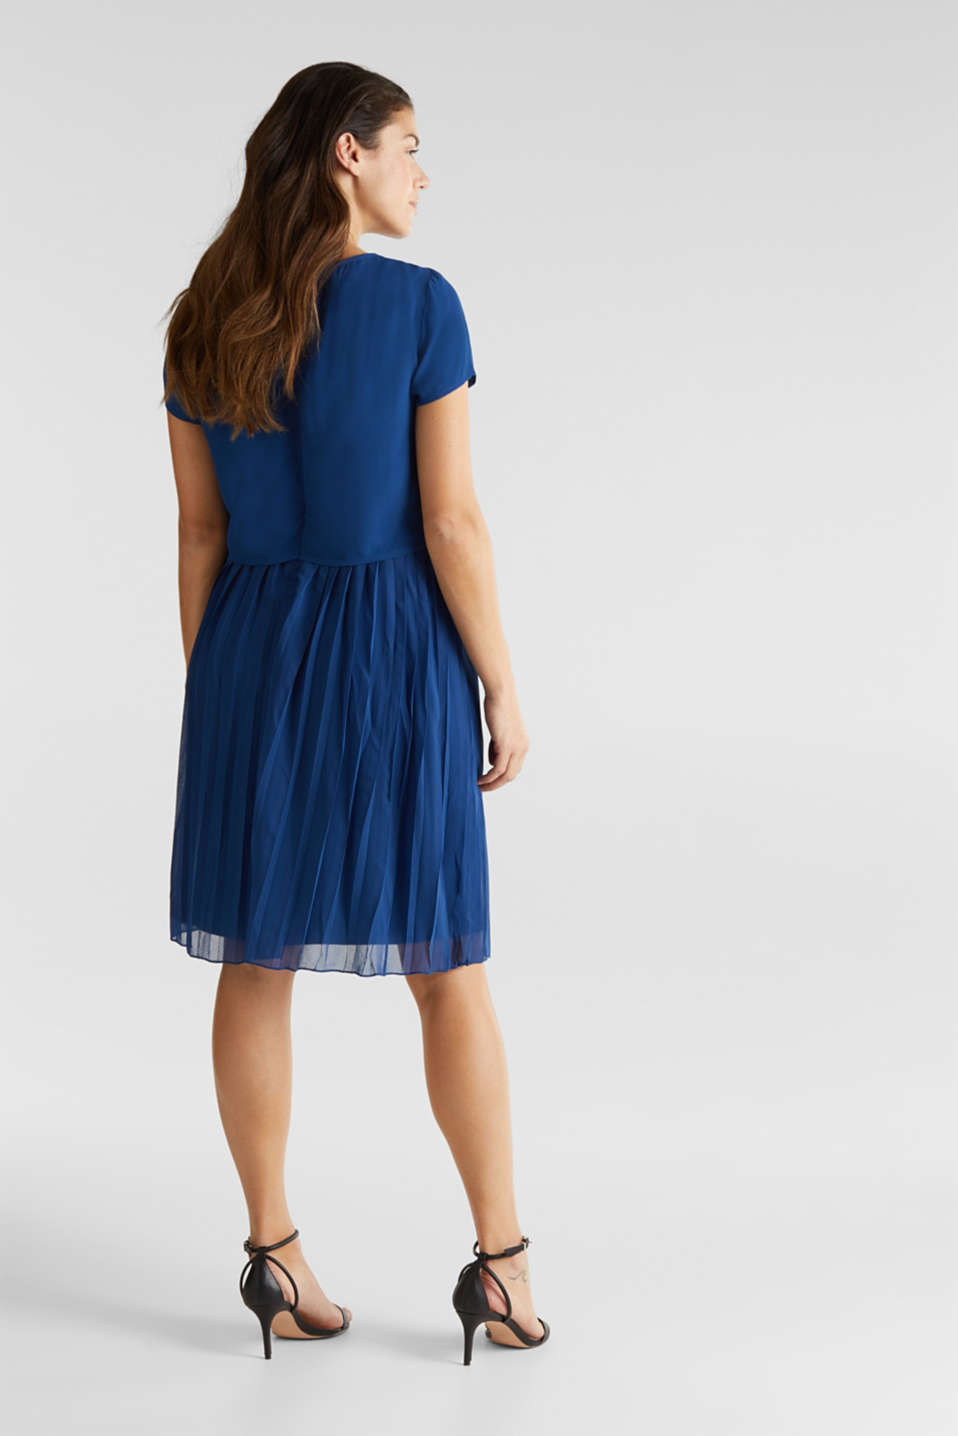 Dress featuring a pleated skirt and a nursing function, LCBRIGHT BLUE, detail image number 3